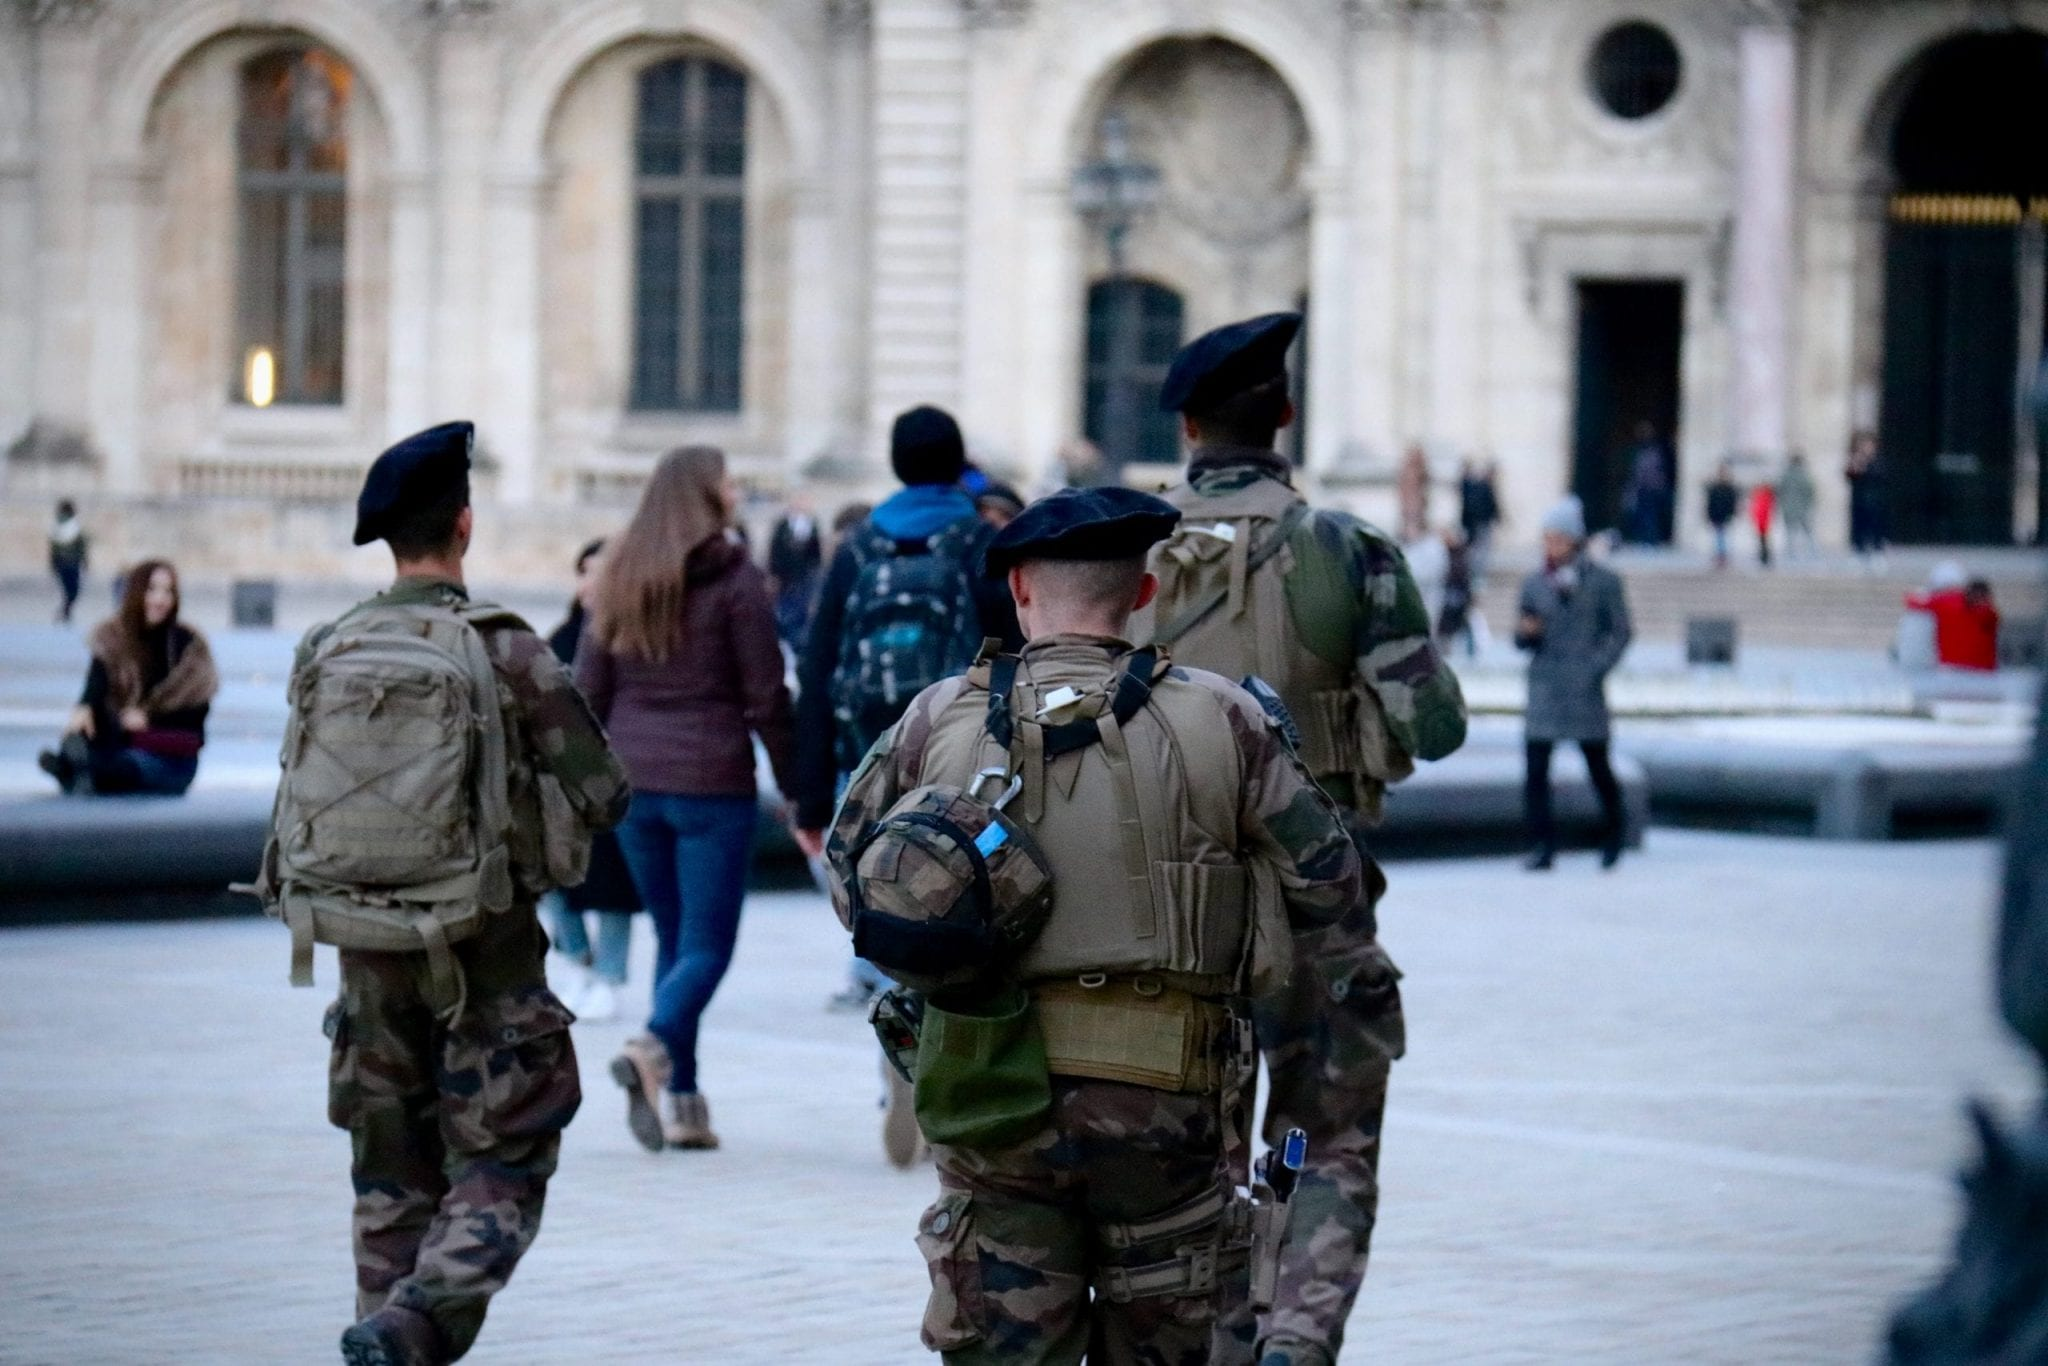 men in military uniforms walking towards a large building.